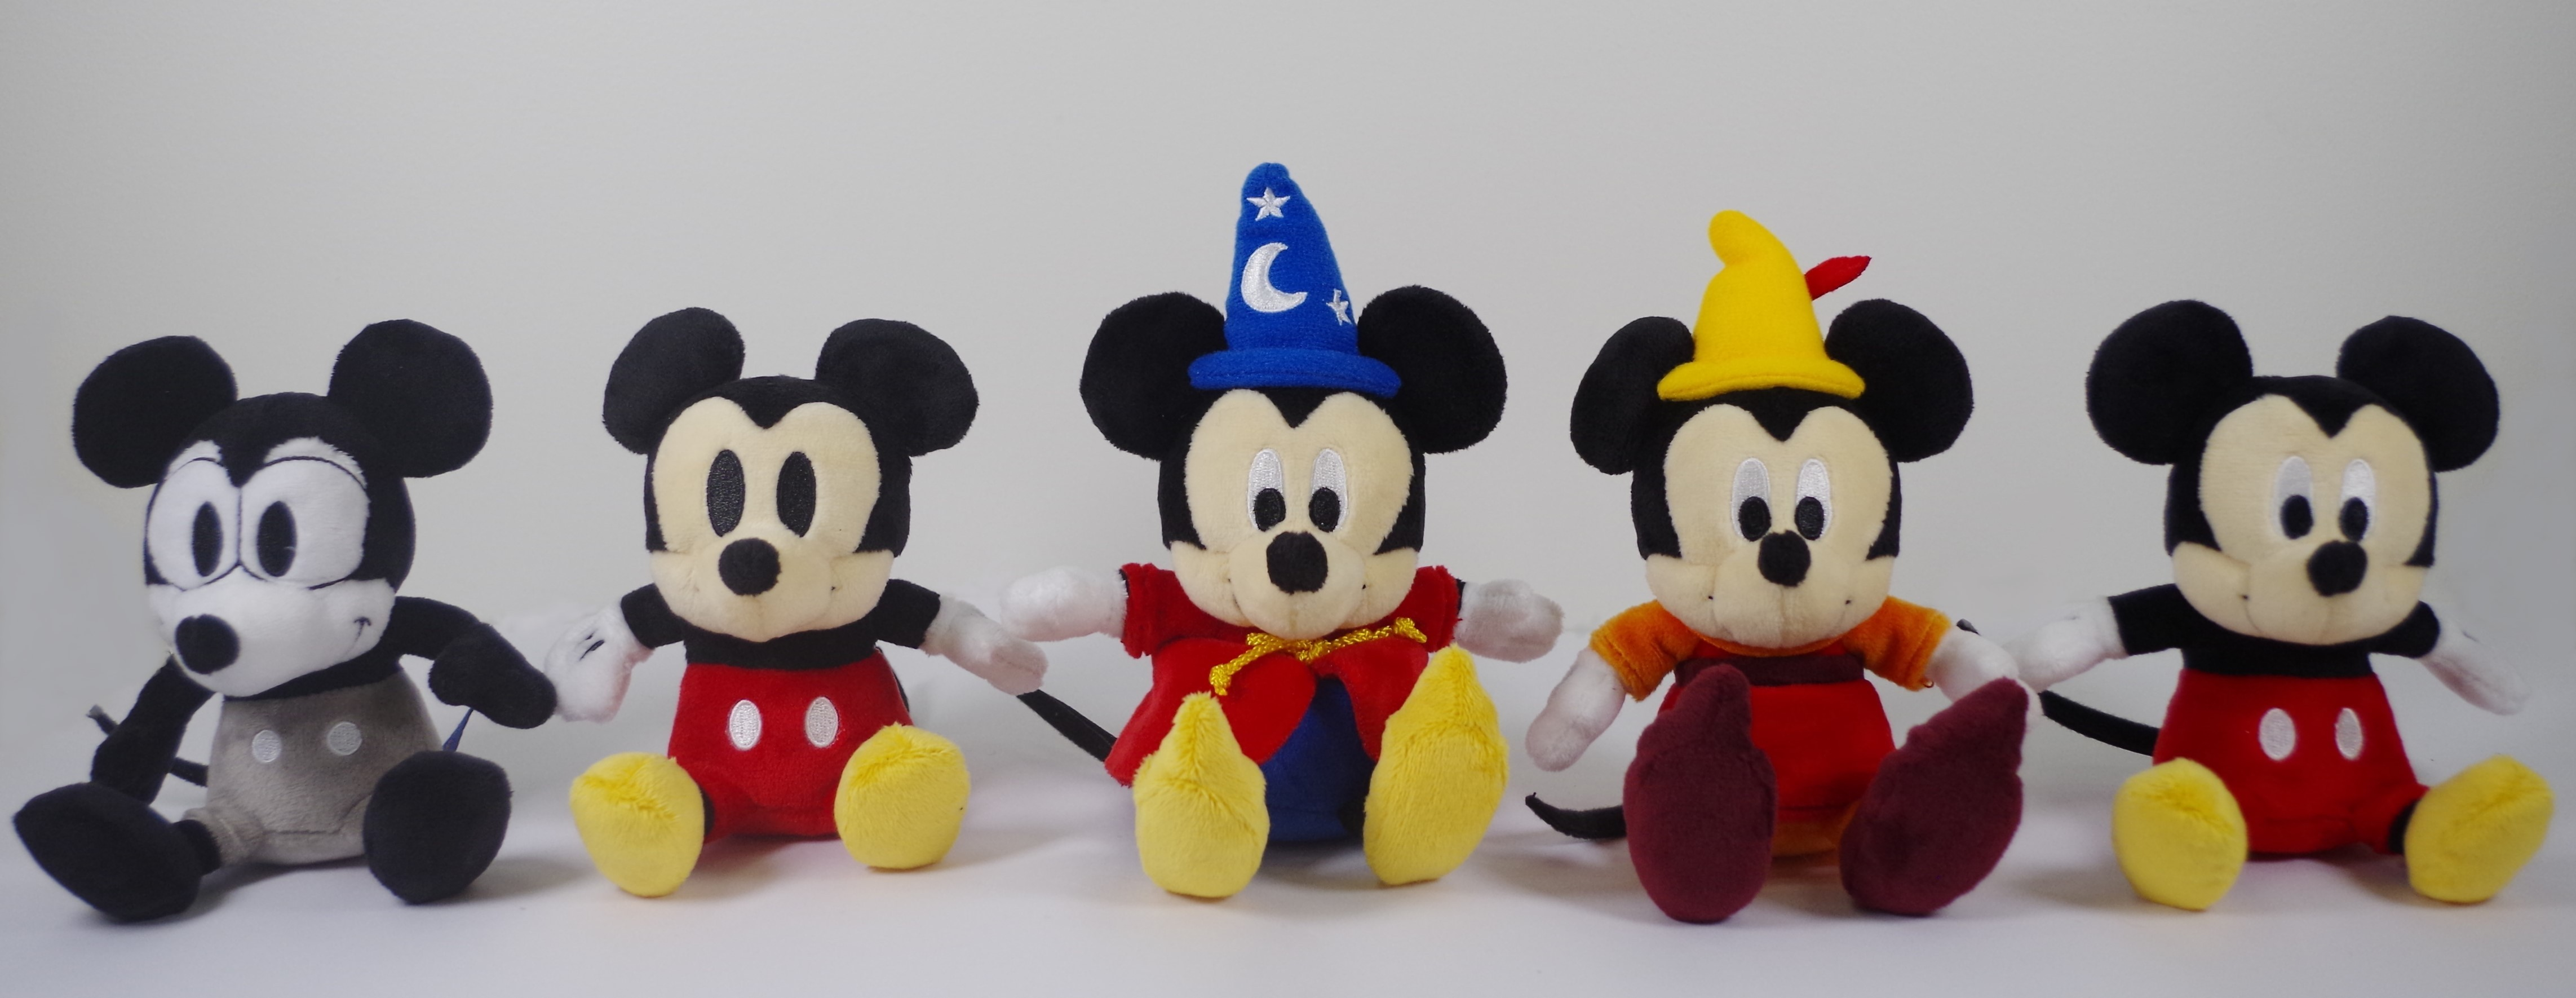 ぬいぐるみ(左から、Plane Crazy/Vintage Style/Fantasia/Fun and Fancy Free/Modern Style) 各 1,620円(税込み) (C)Disney